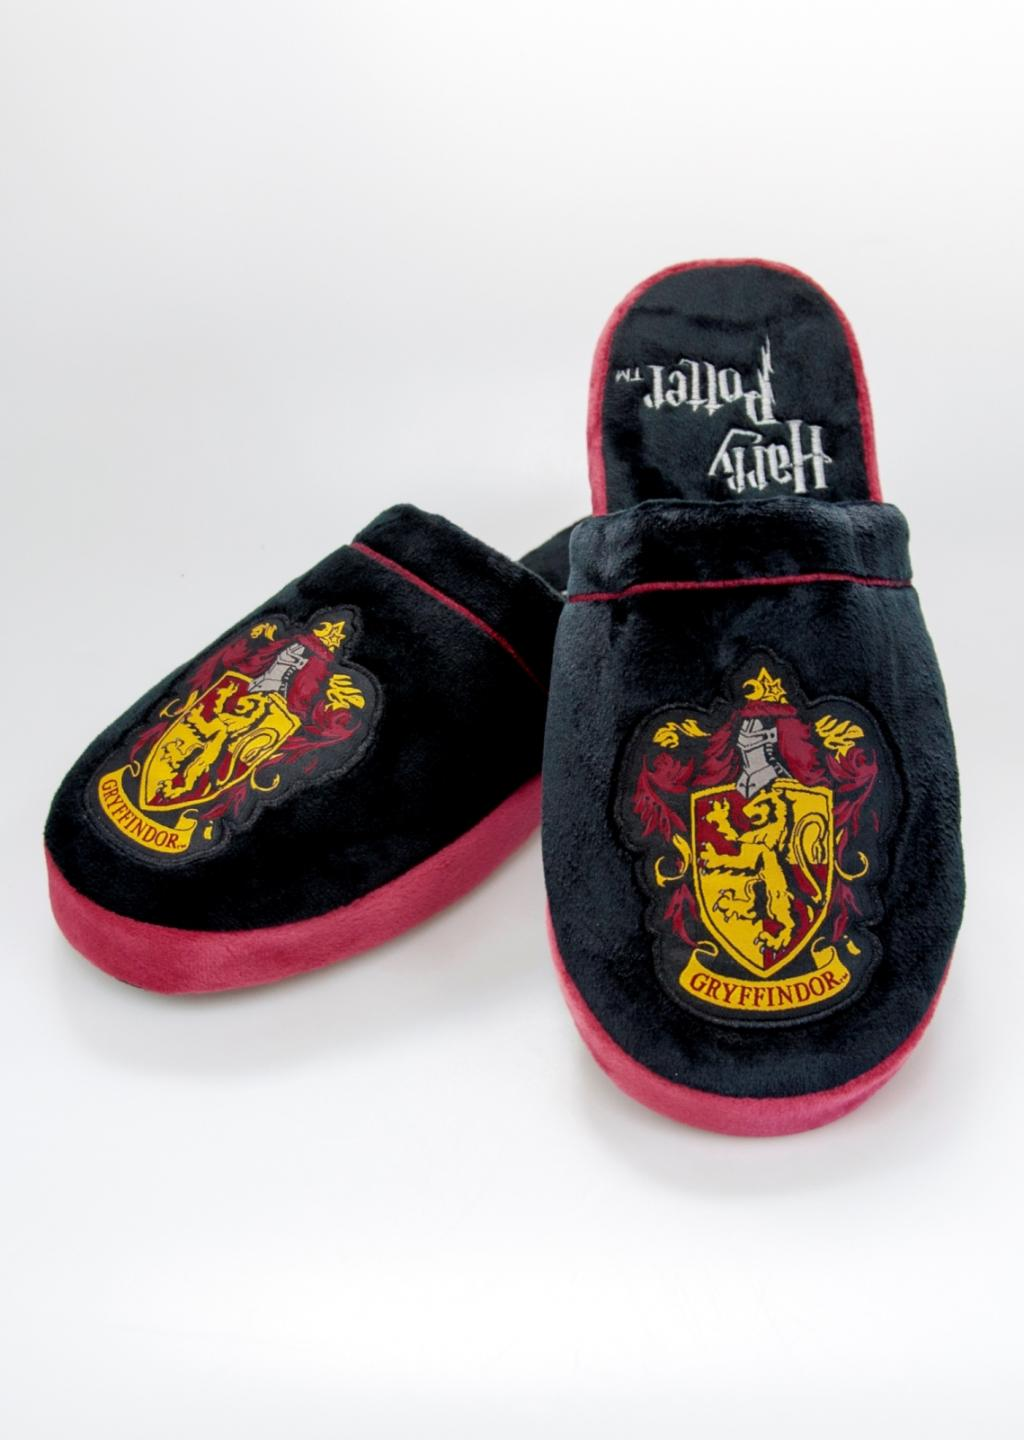 HARRY POTTER - Pantoufles - Gryffondor (38-41)